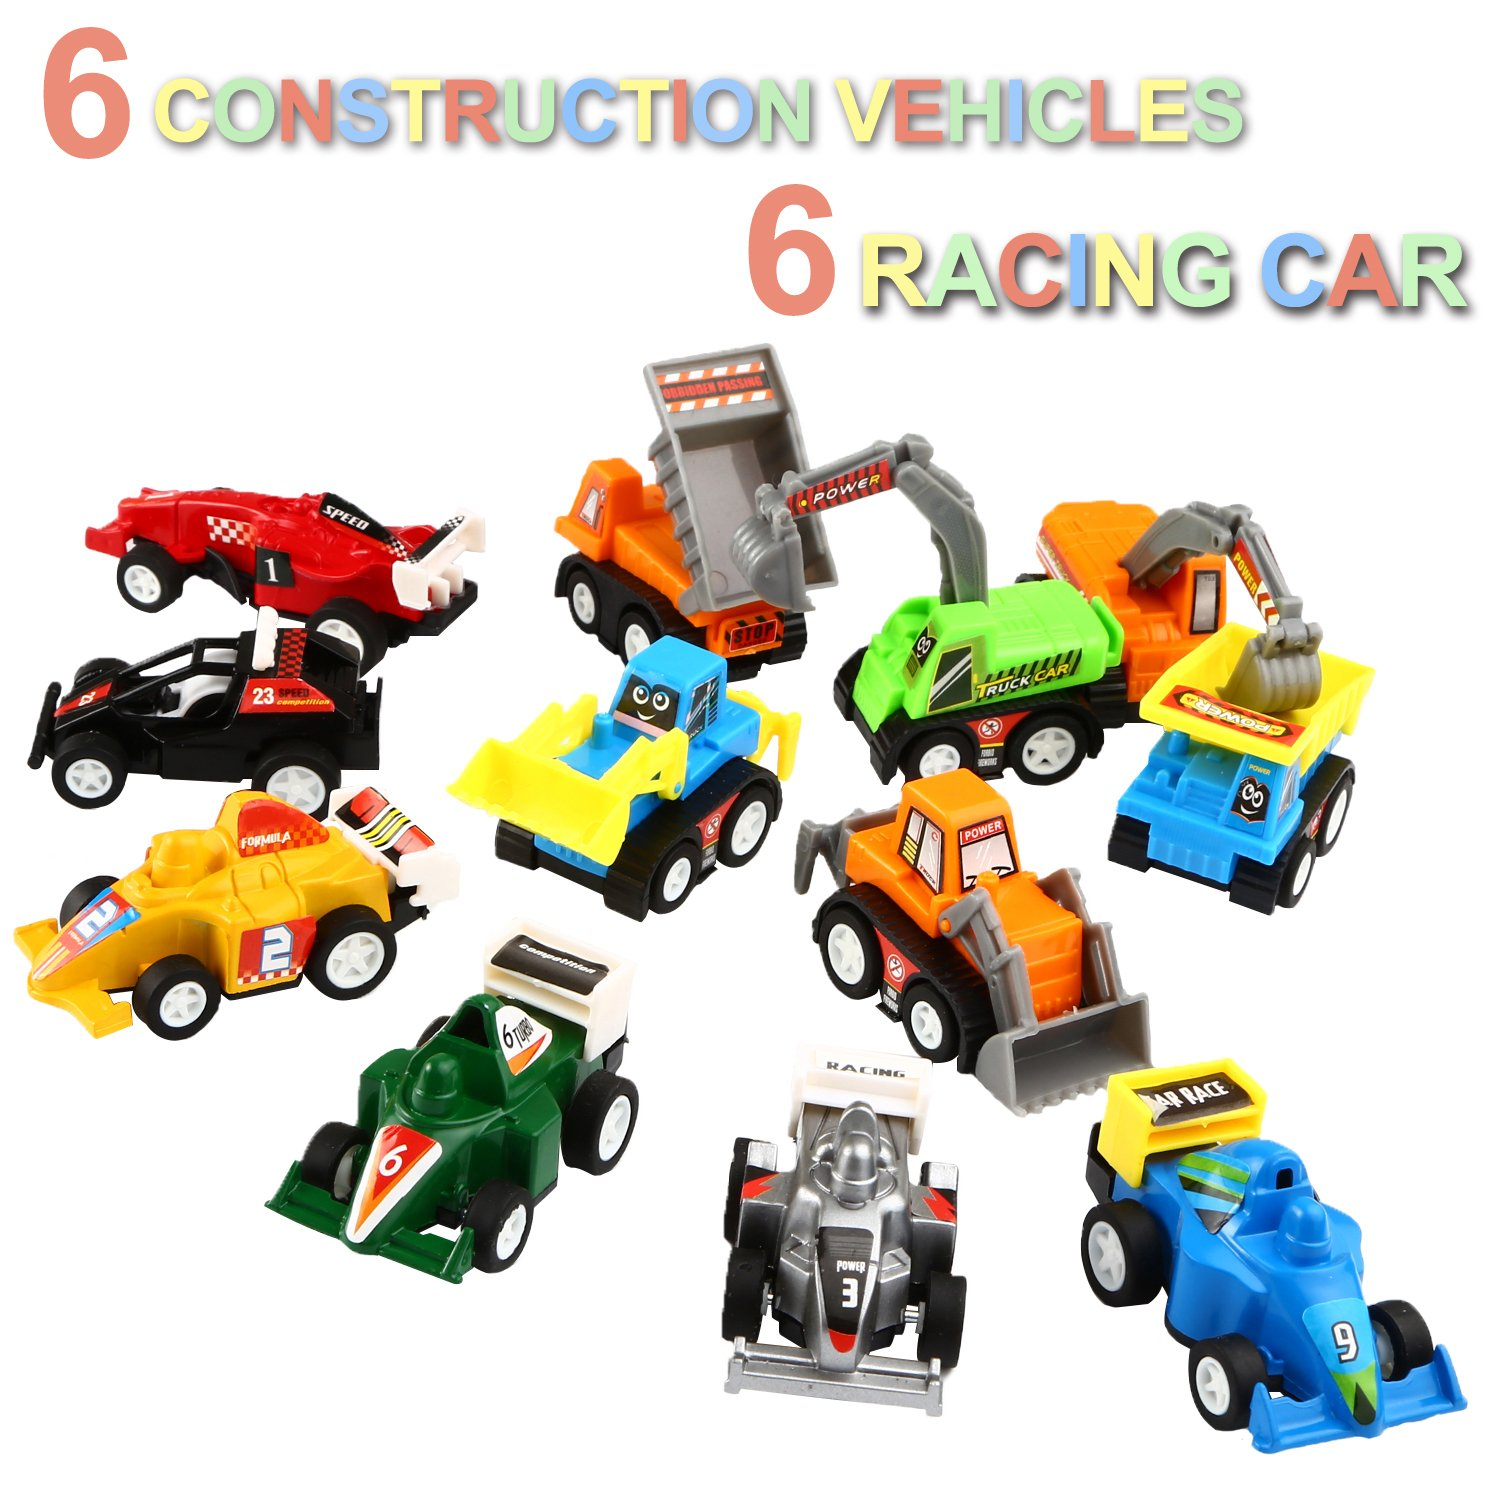 Construction Equipment Toys For Boys : Pull back vehicles pack assorted construction